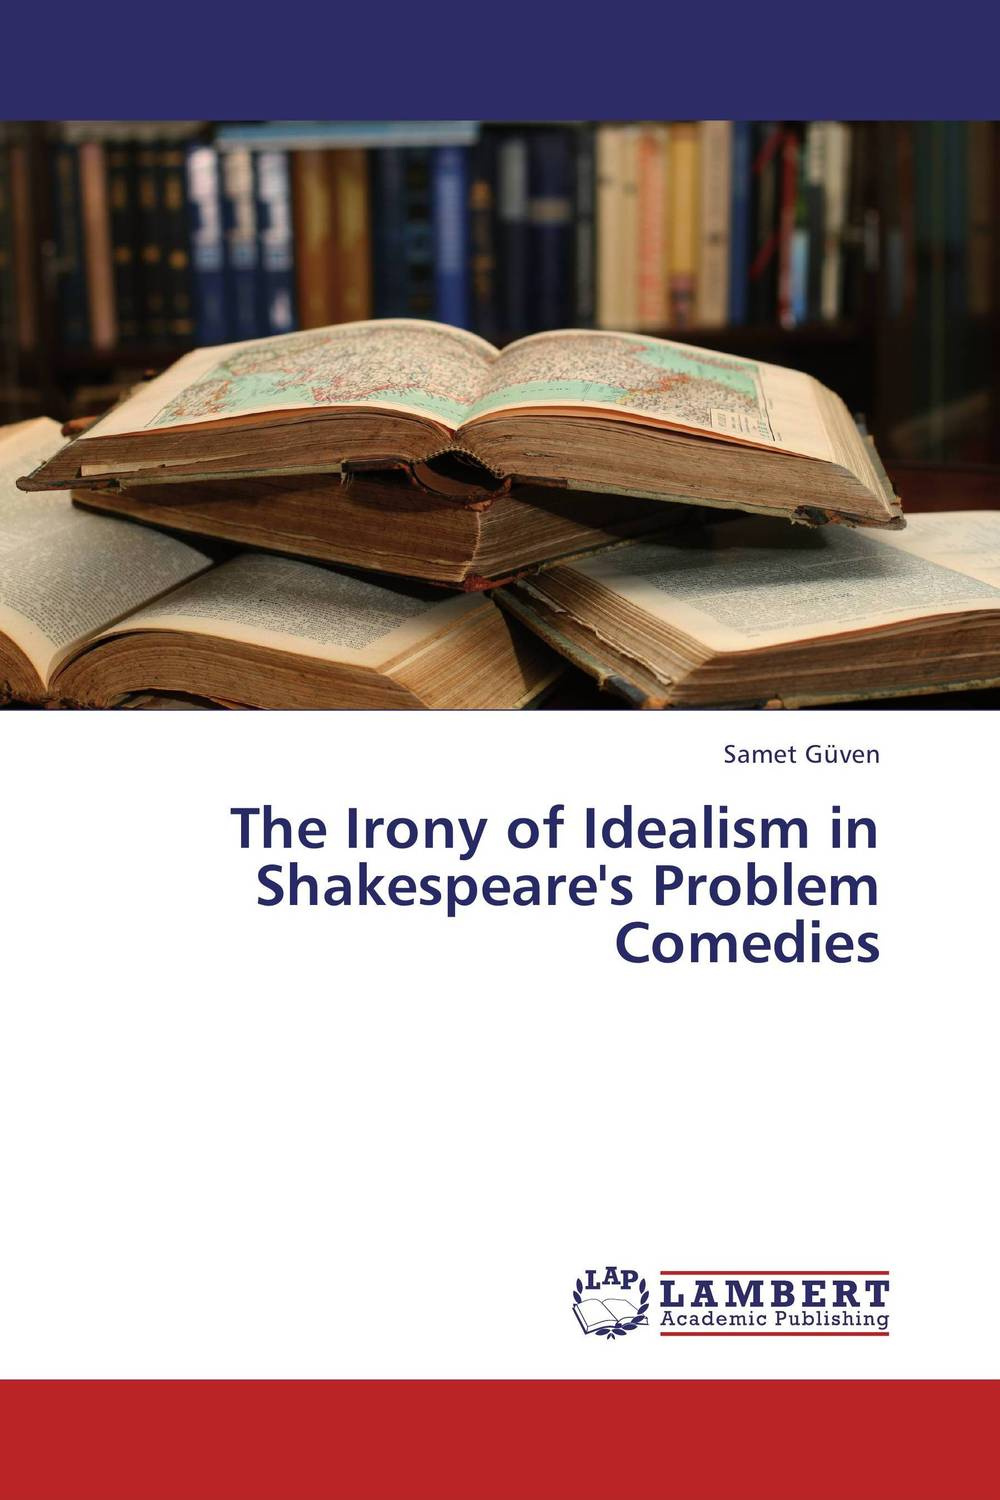 The Irony of Idealism in Shakespeare's Problem Comedies